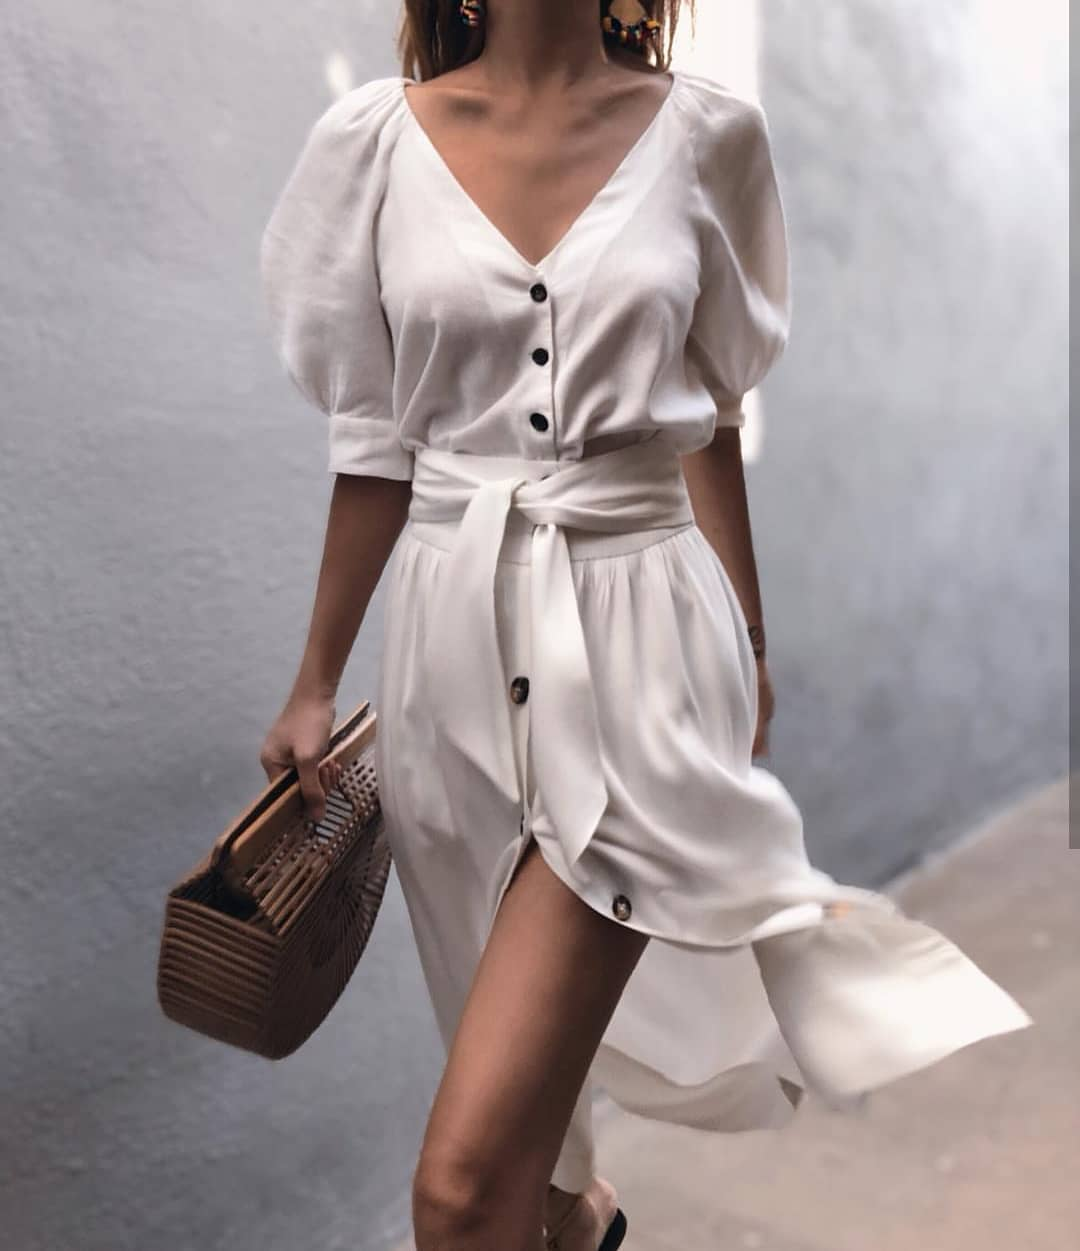 Belted Shirtdress In White Color For Summer 2019